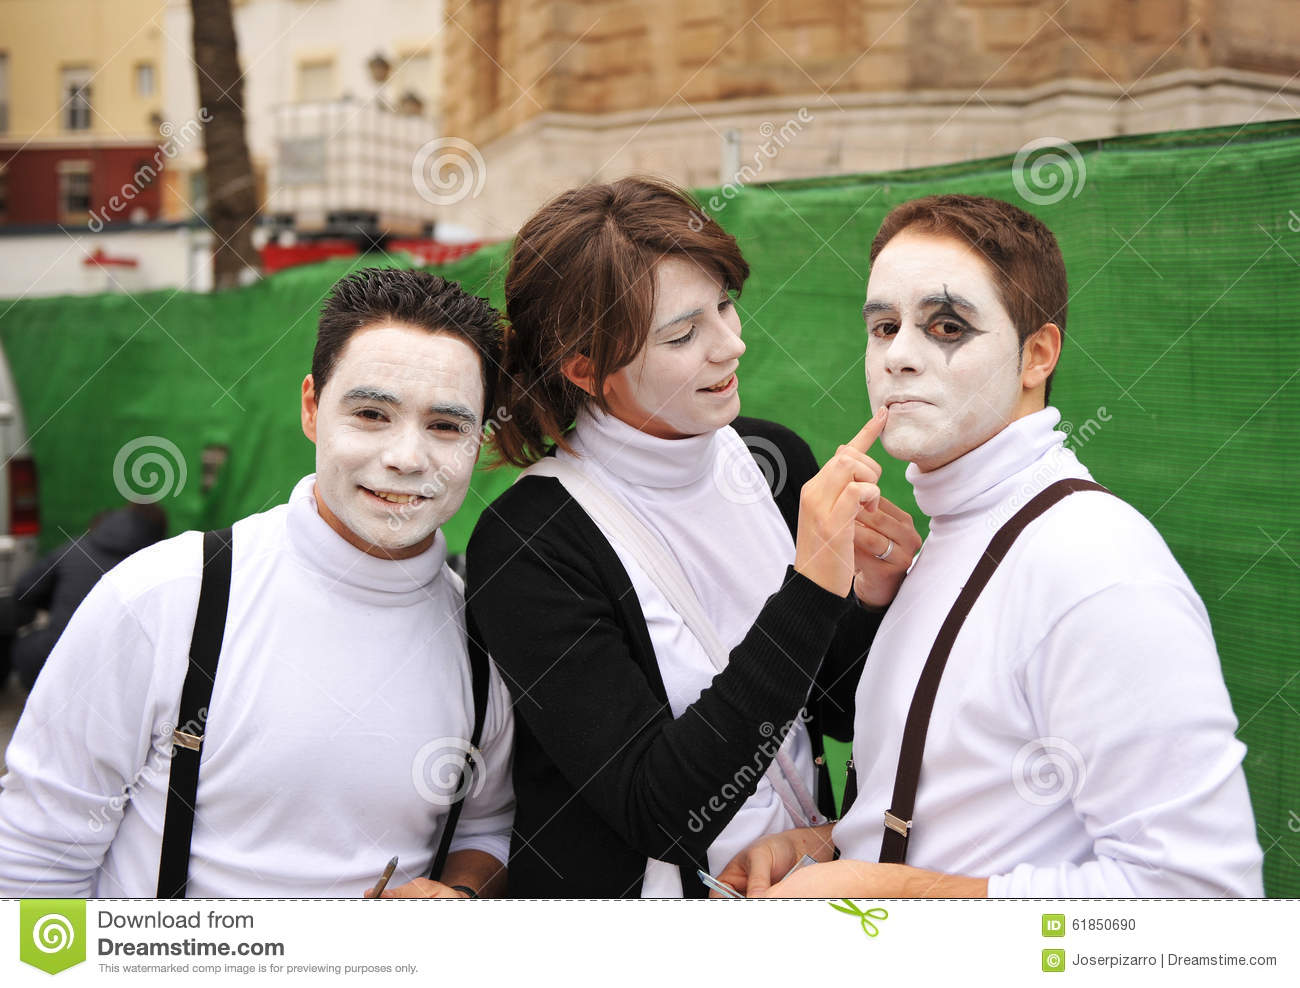 Adolescents in Carnaval of Cadiz, Andalusia, Spain